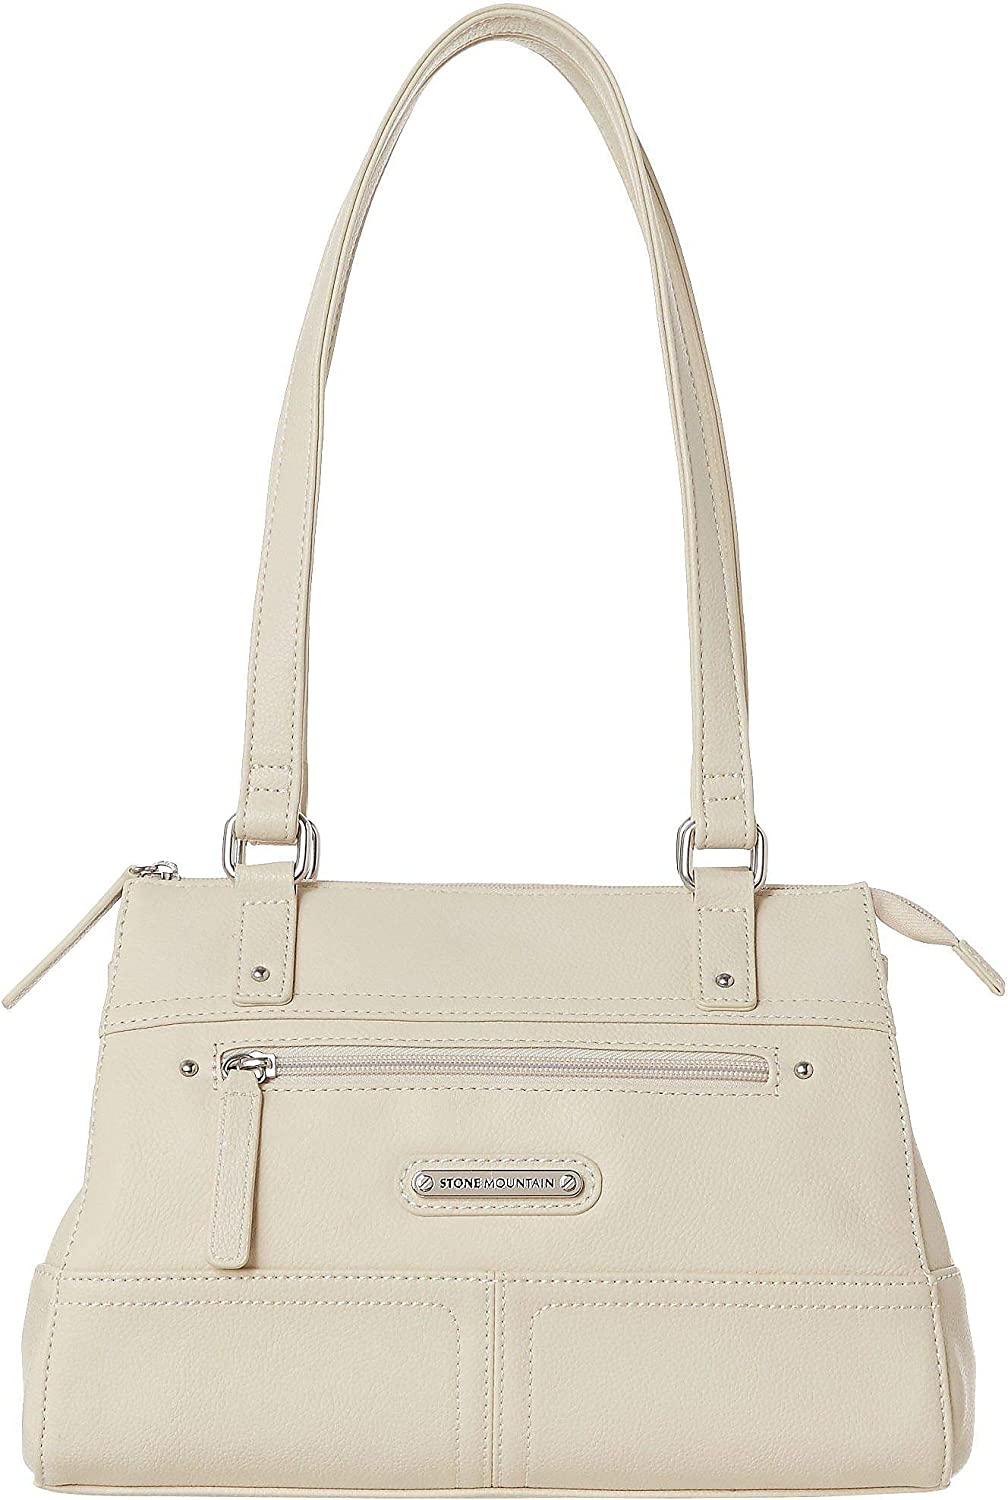 Stone Mountain Dade Satchel Handbag One Size Bone beige